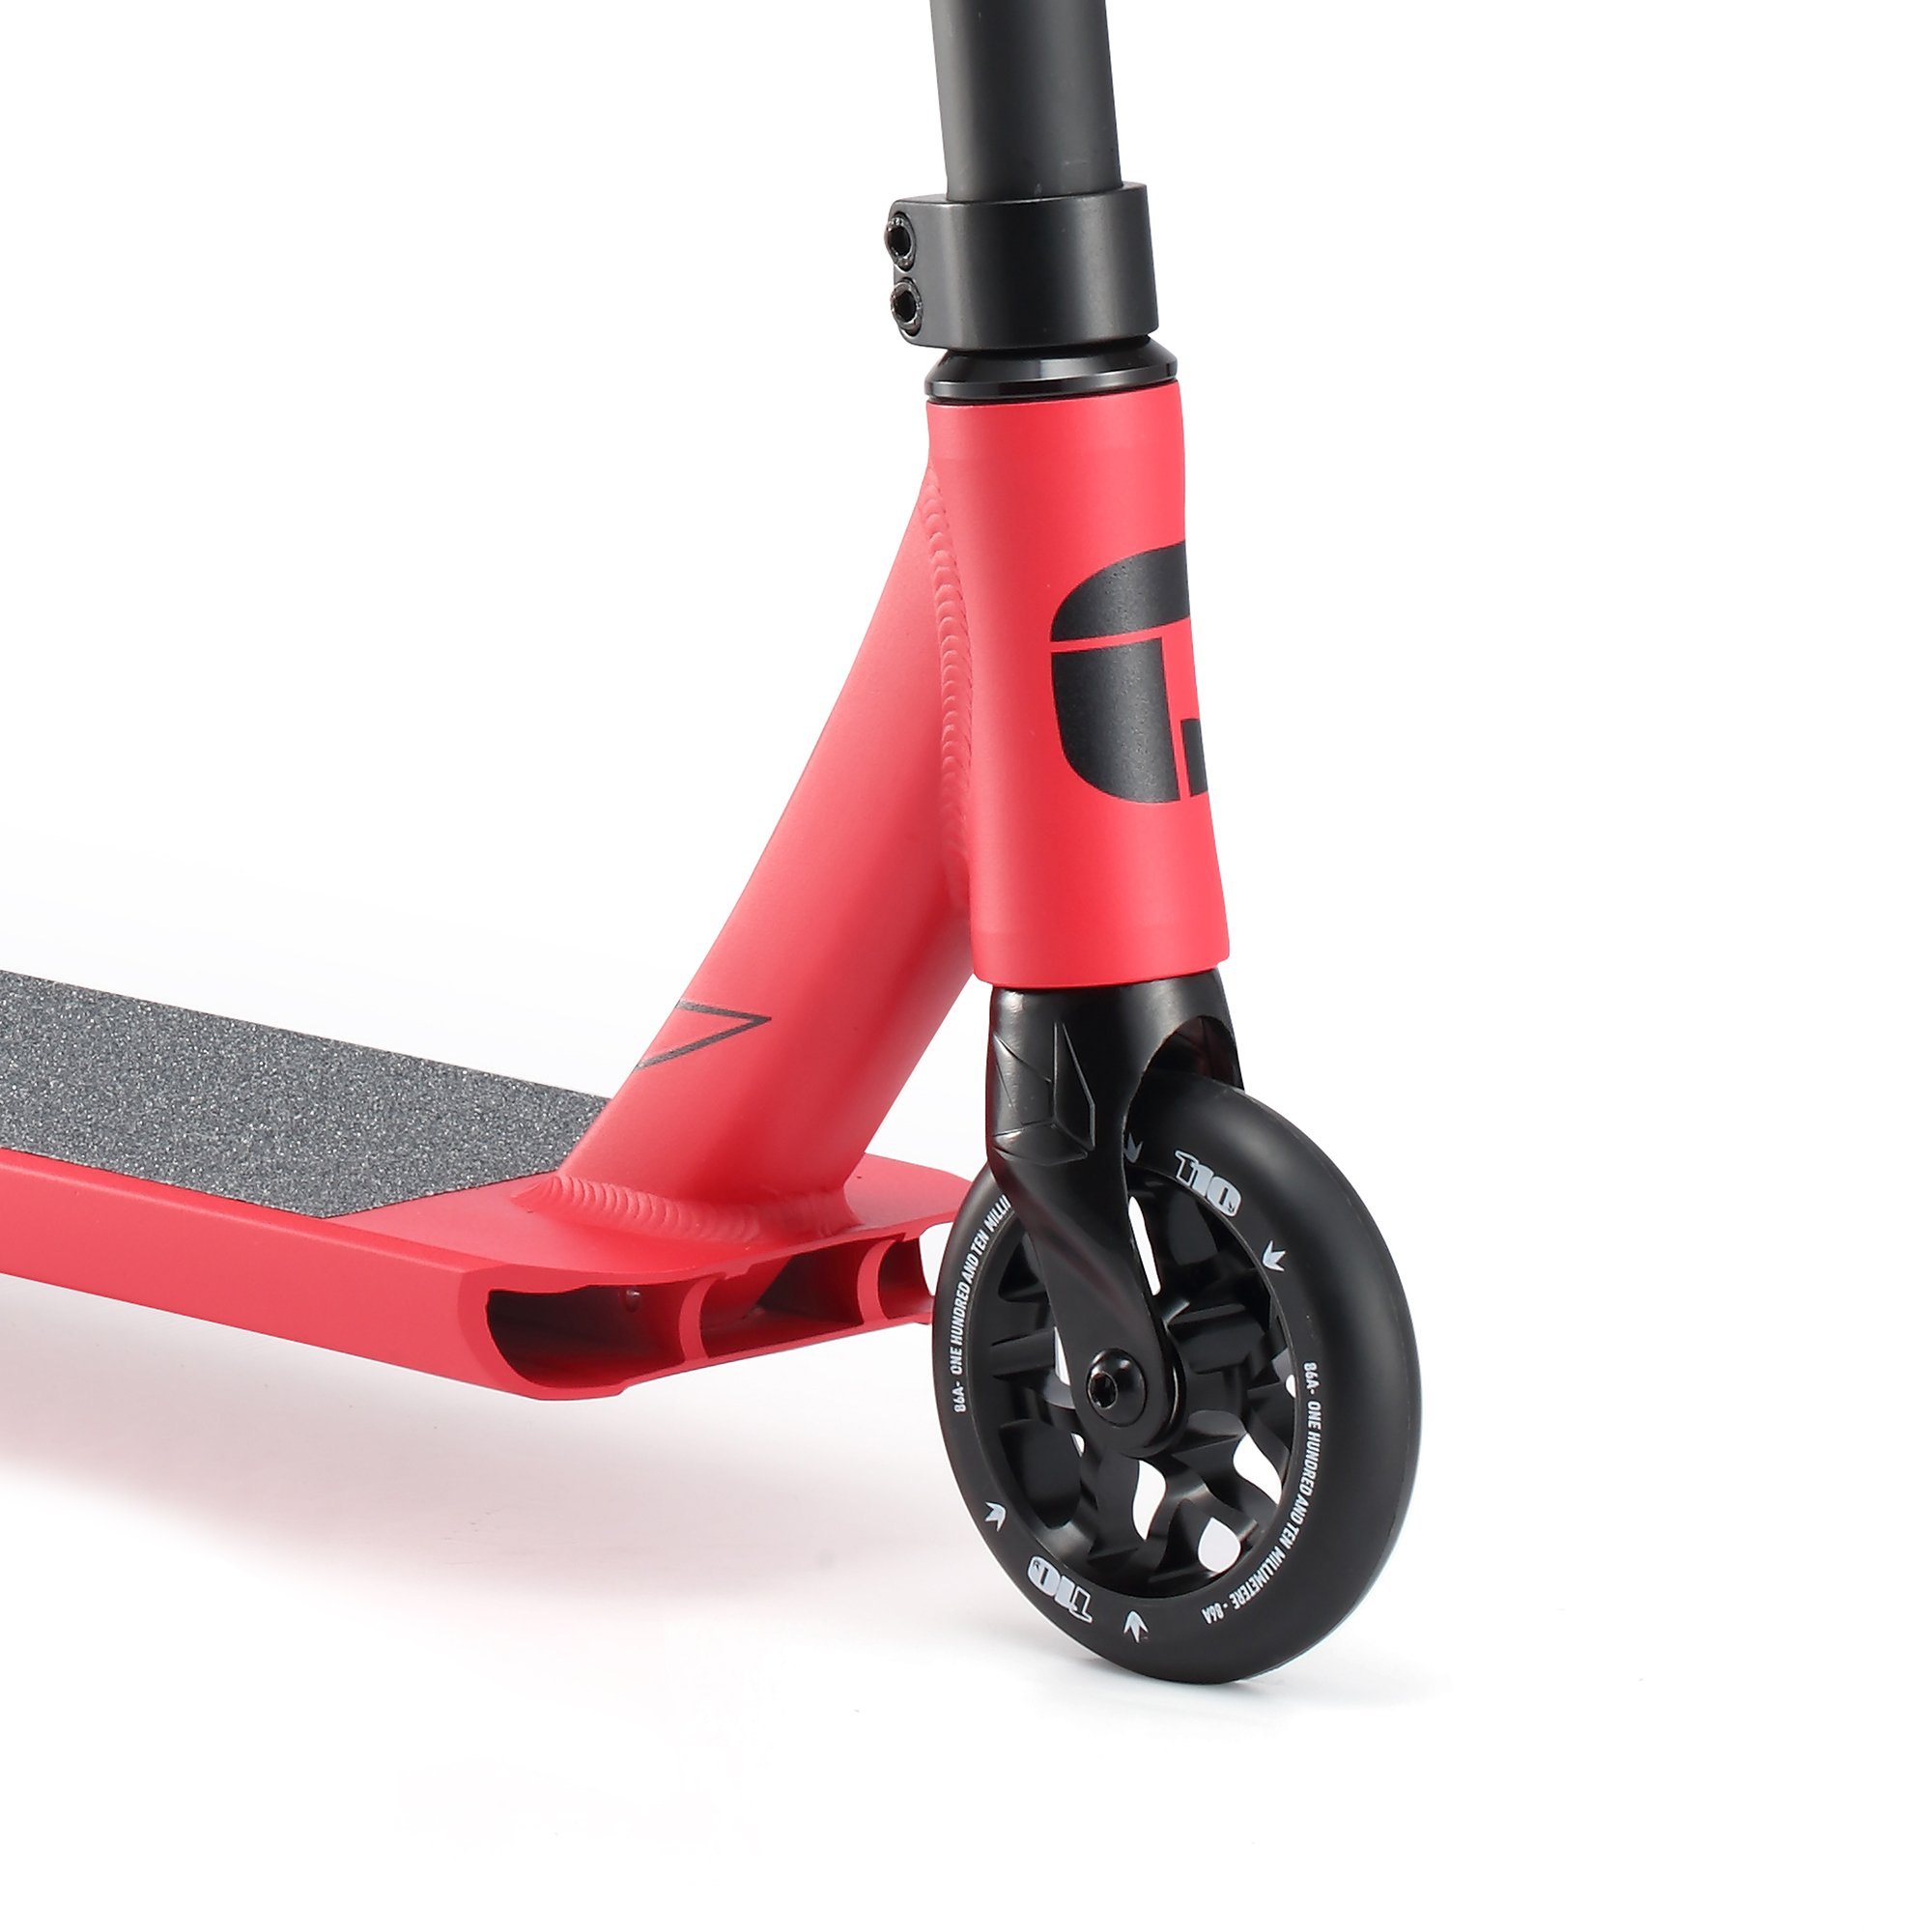 Envy Series 2 Colt Scooter (Red) by Envy Scooters